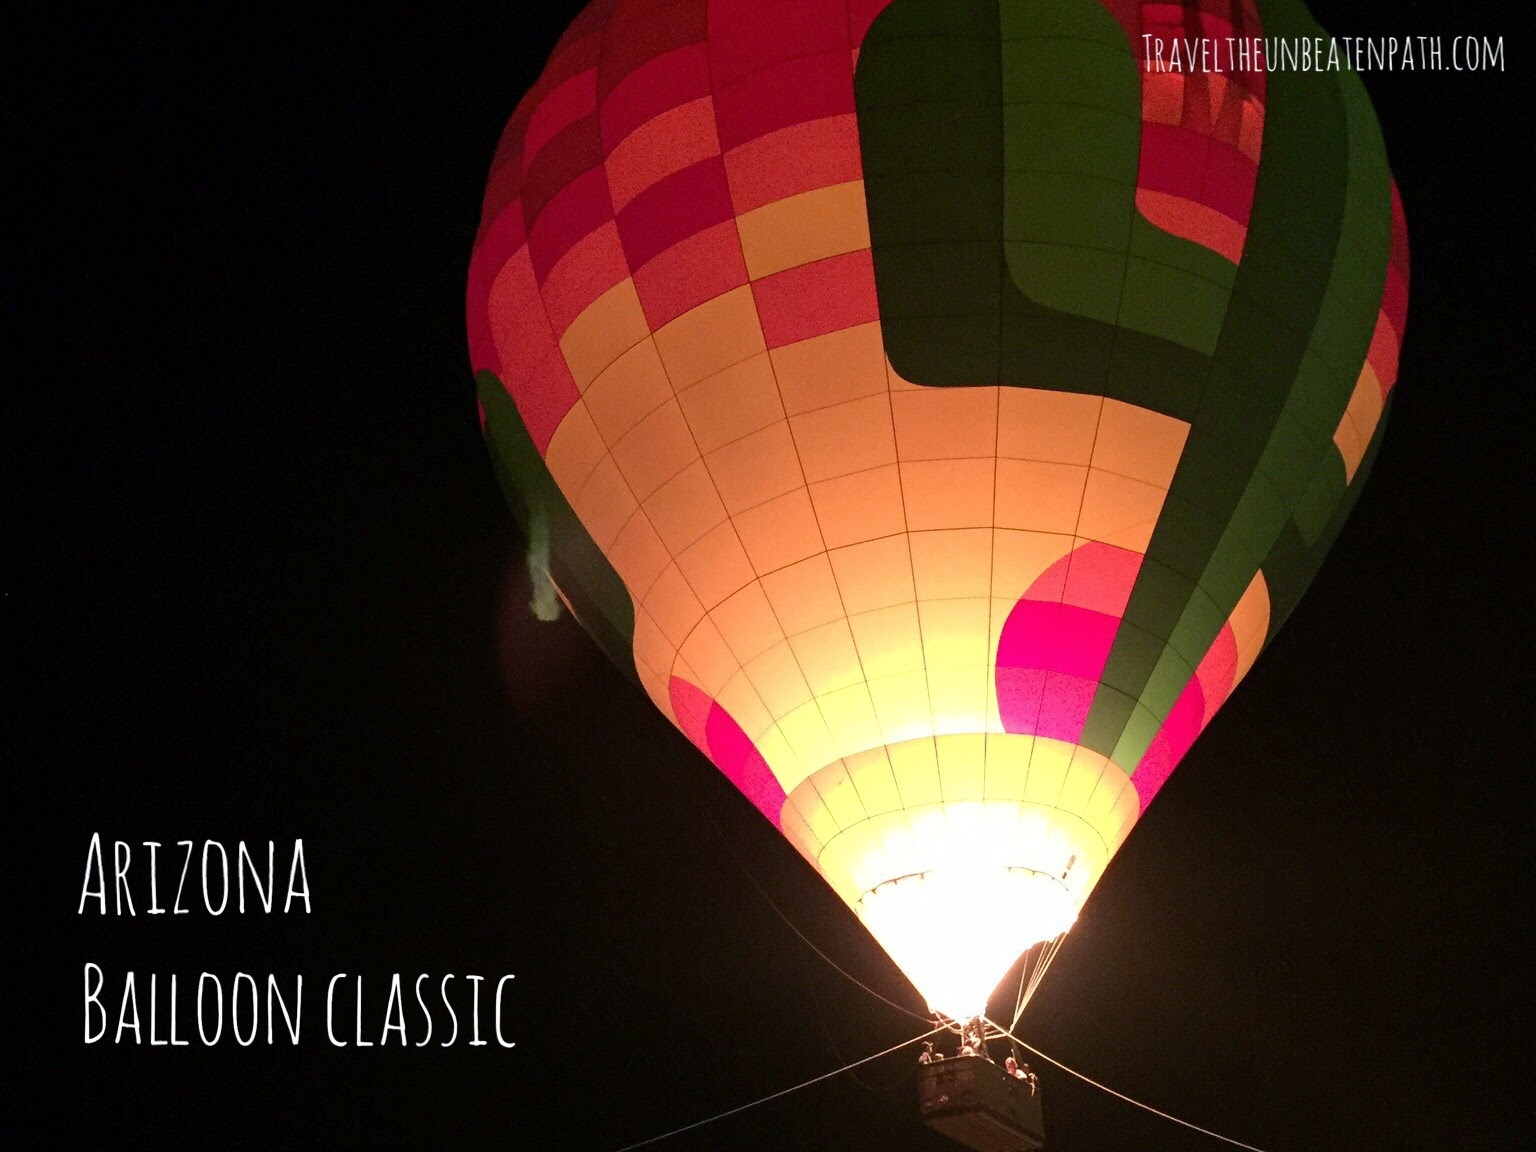 arizona hot air balloon classic festival